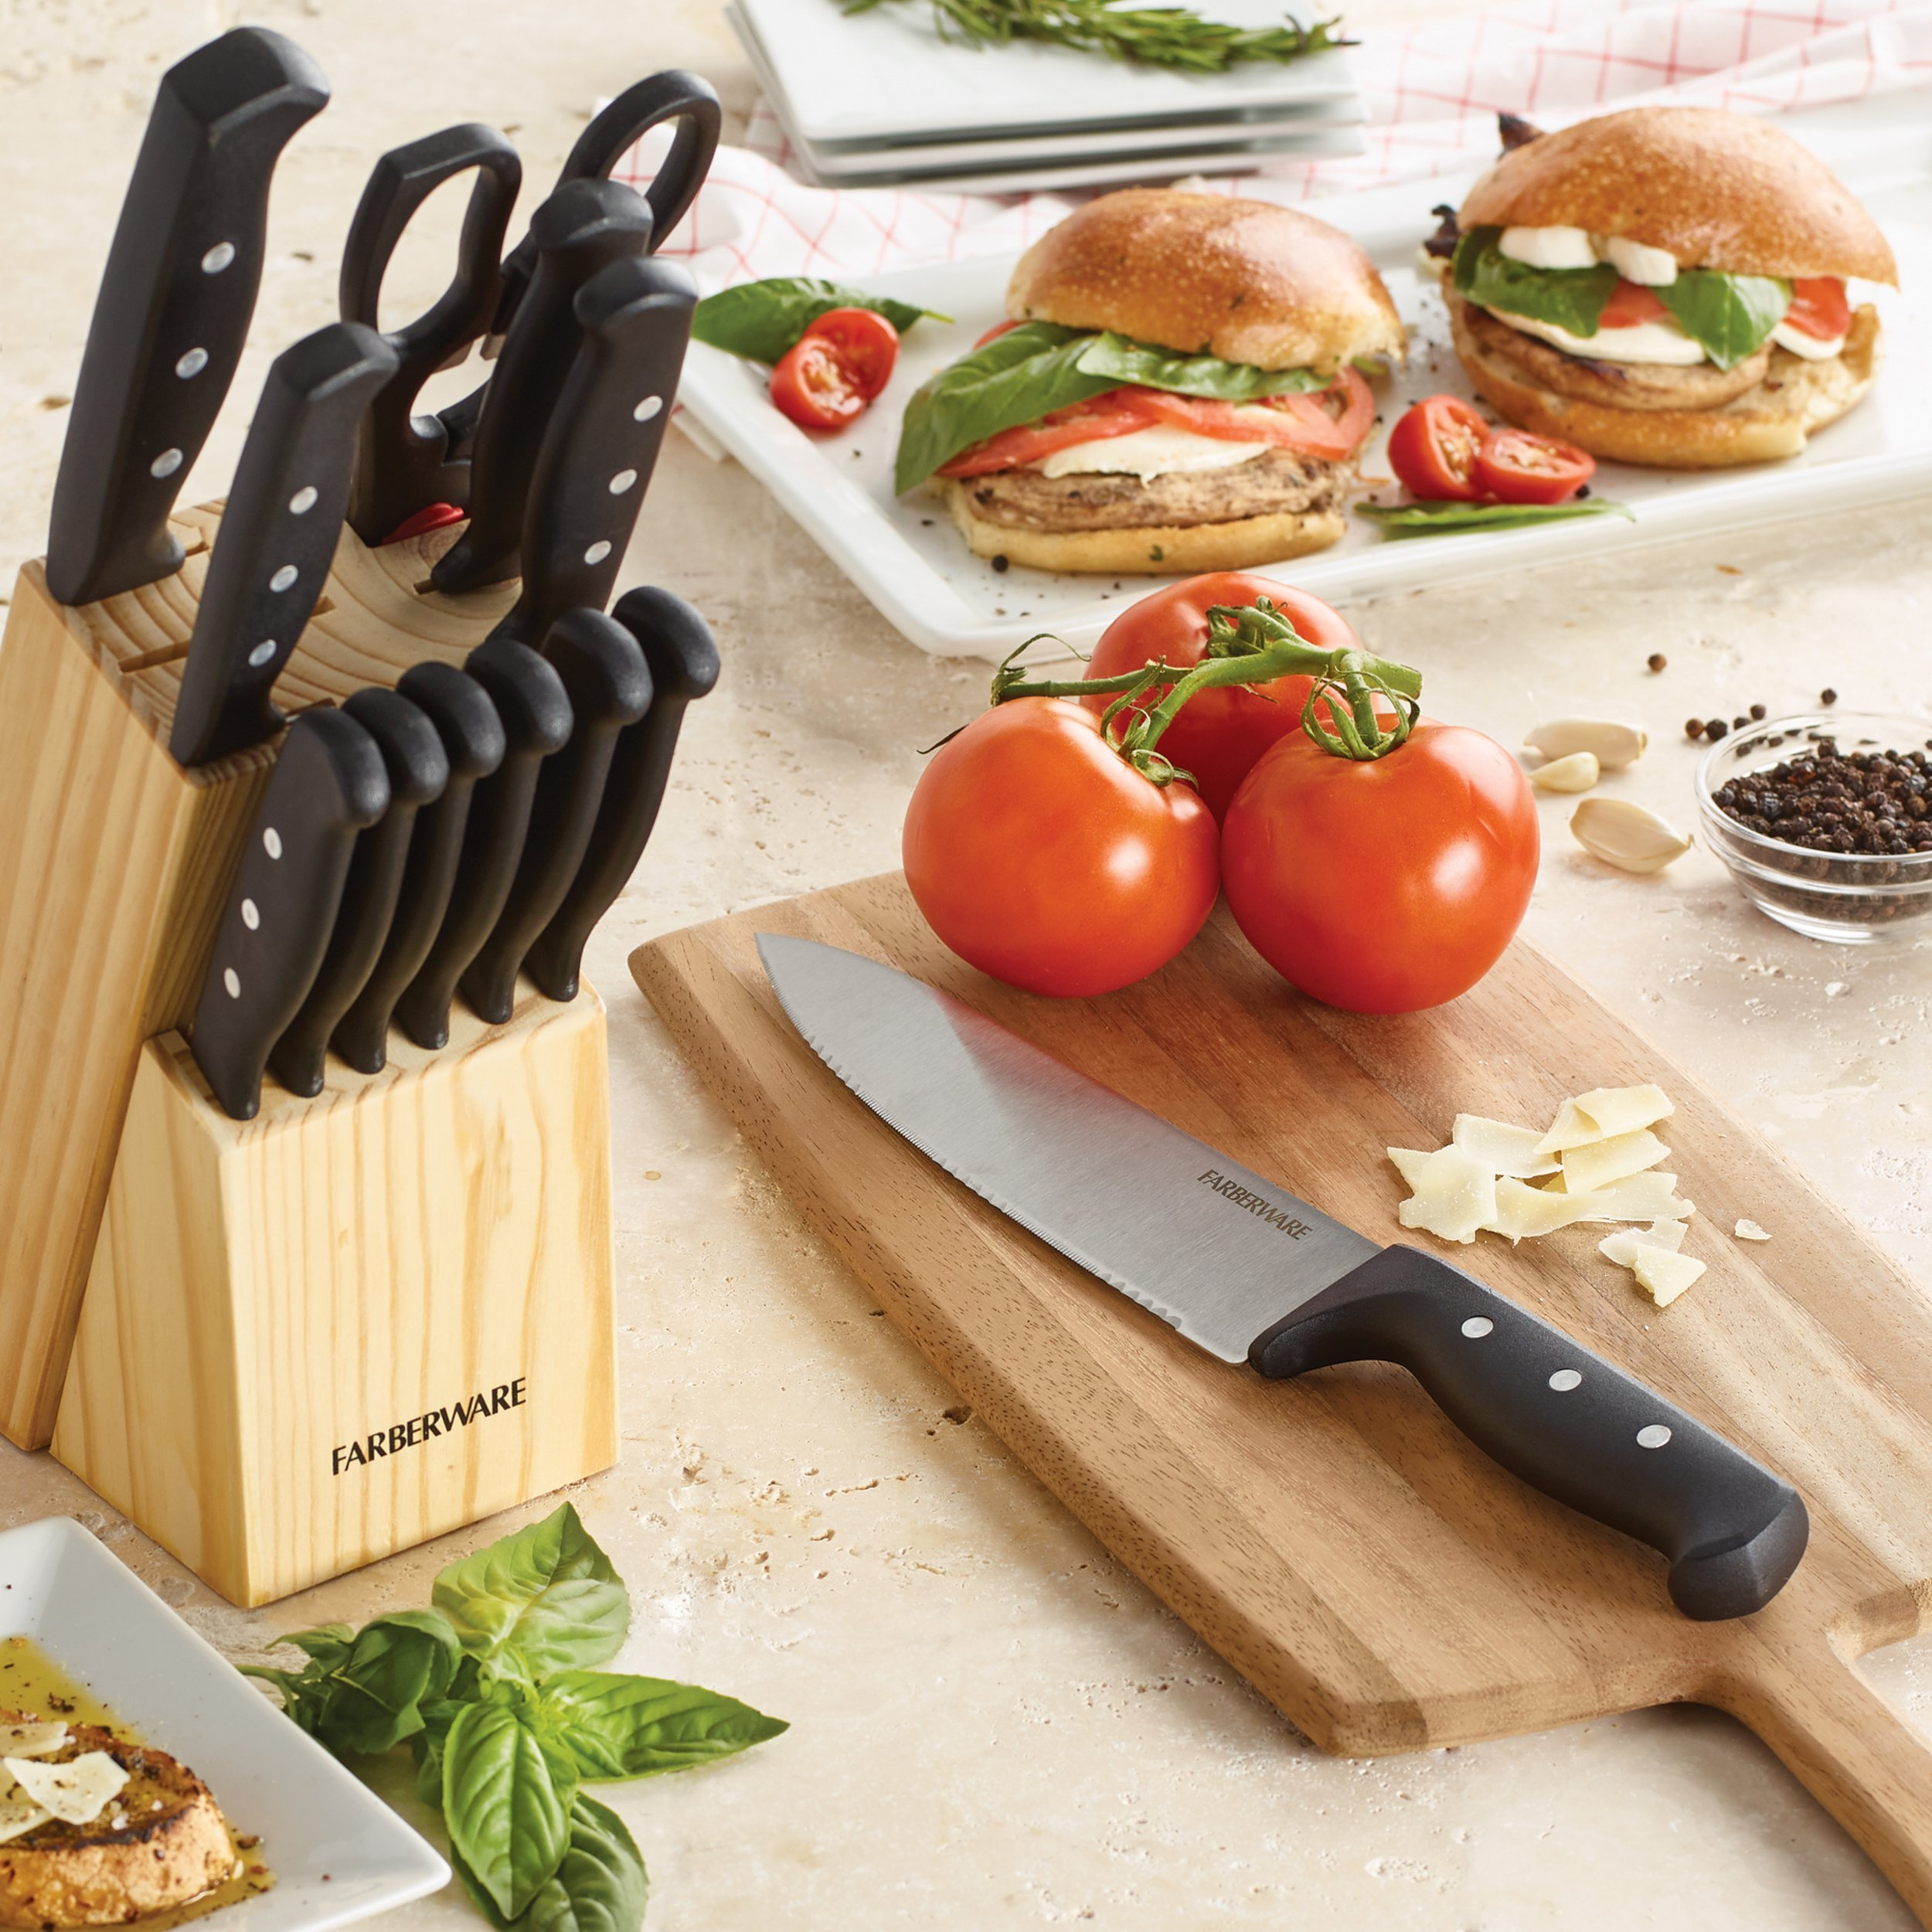 Farberware 5152501 'Never Needs Sharpening' 22-Piece Triple Rivet Stainless Steel Knife Block Set with Kitchen Tool Set For Back to School College, Black by Farberware (Image #4)